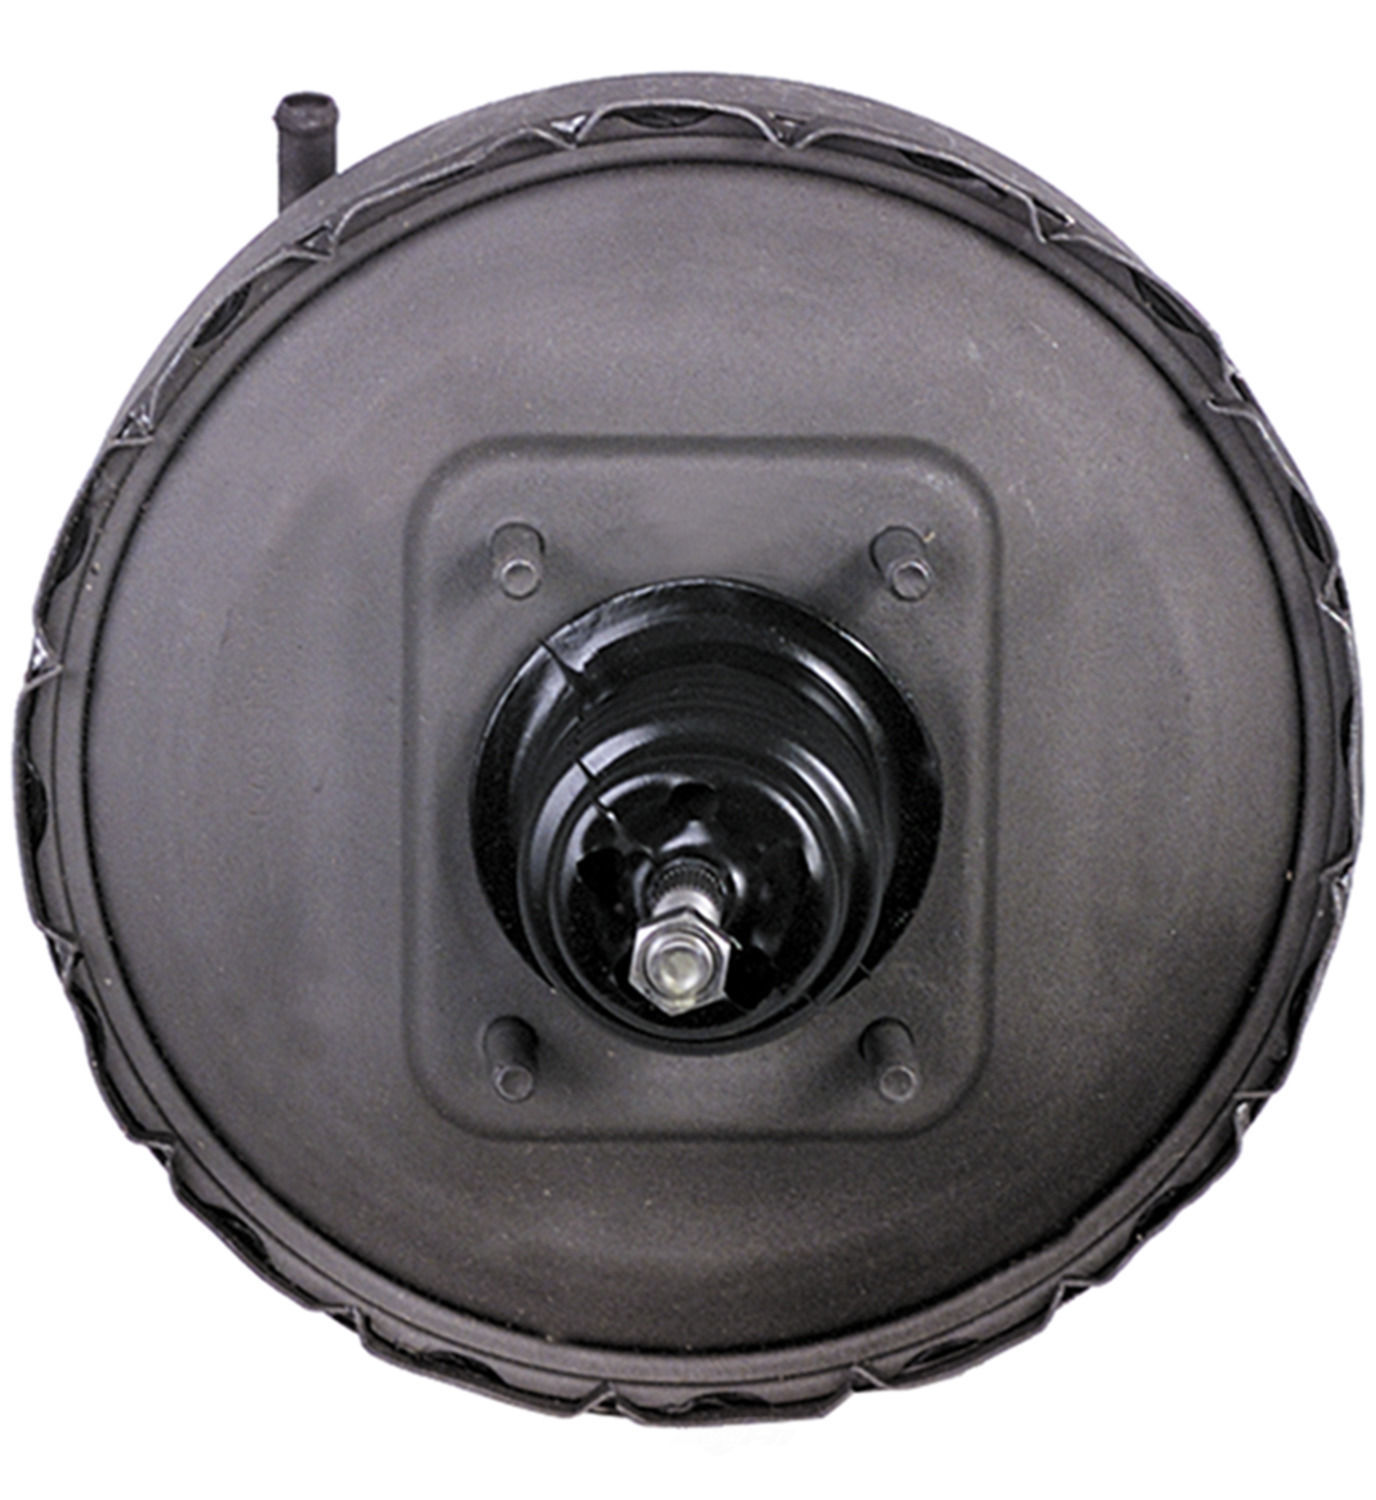 For Mazda B2000 1984 1987 Replace 2635 Remanufactured: Used 1986 Mazda B2000 Master Cylinders & Parts For Sale